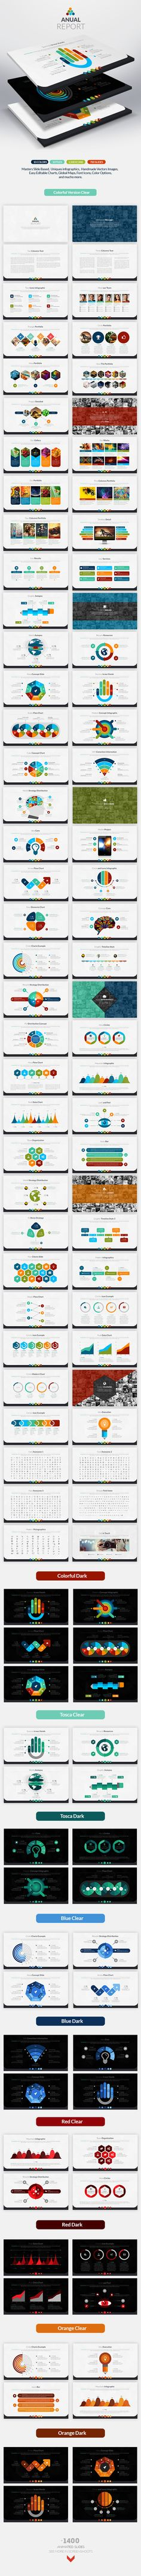 Anual Report | Keynote Presentation Template | #keynote | Buy and Download…